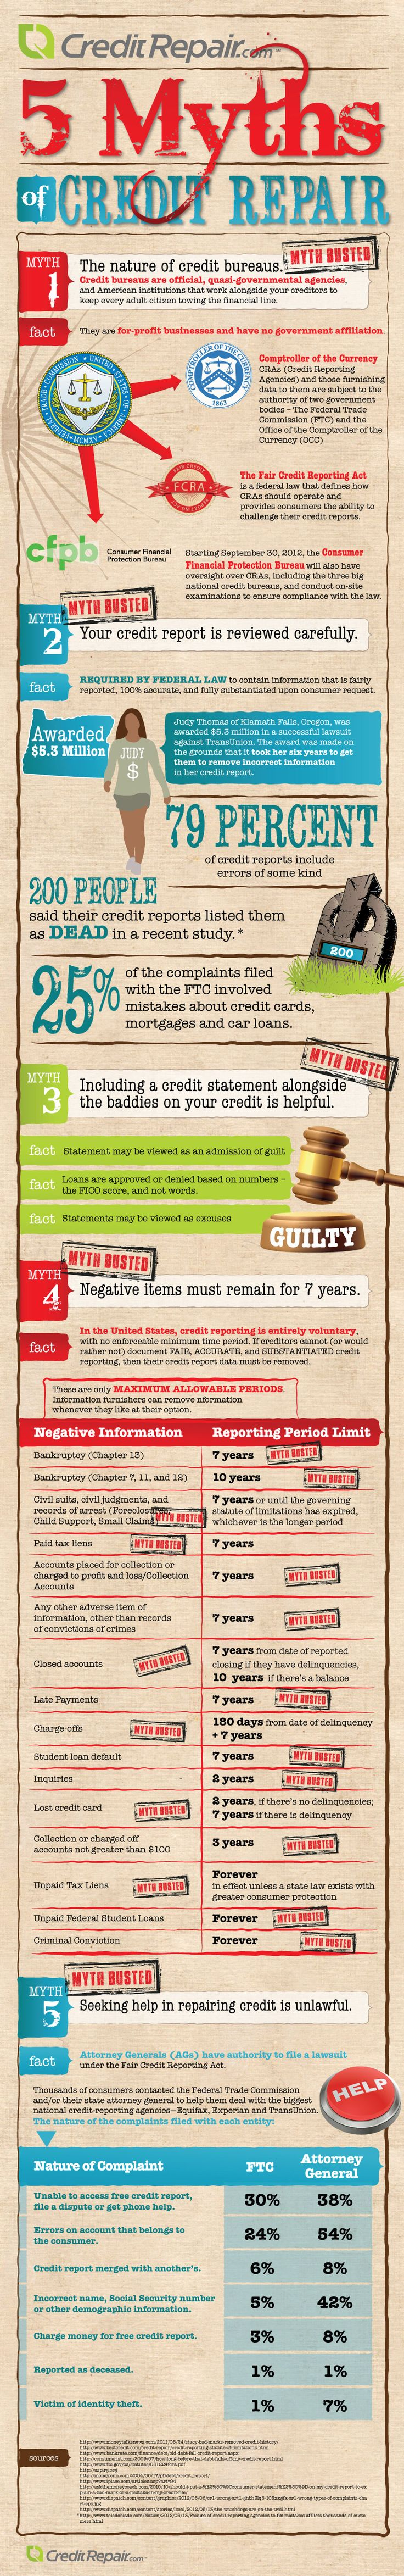 5 Myths of #Credit Repair - BUSTED!